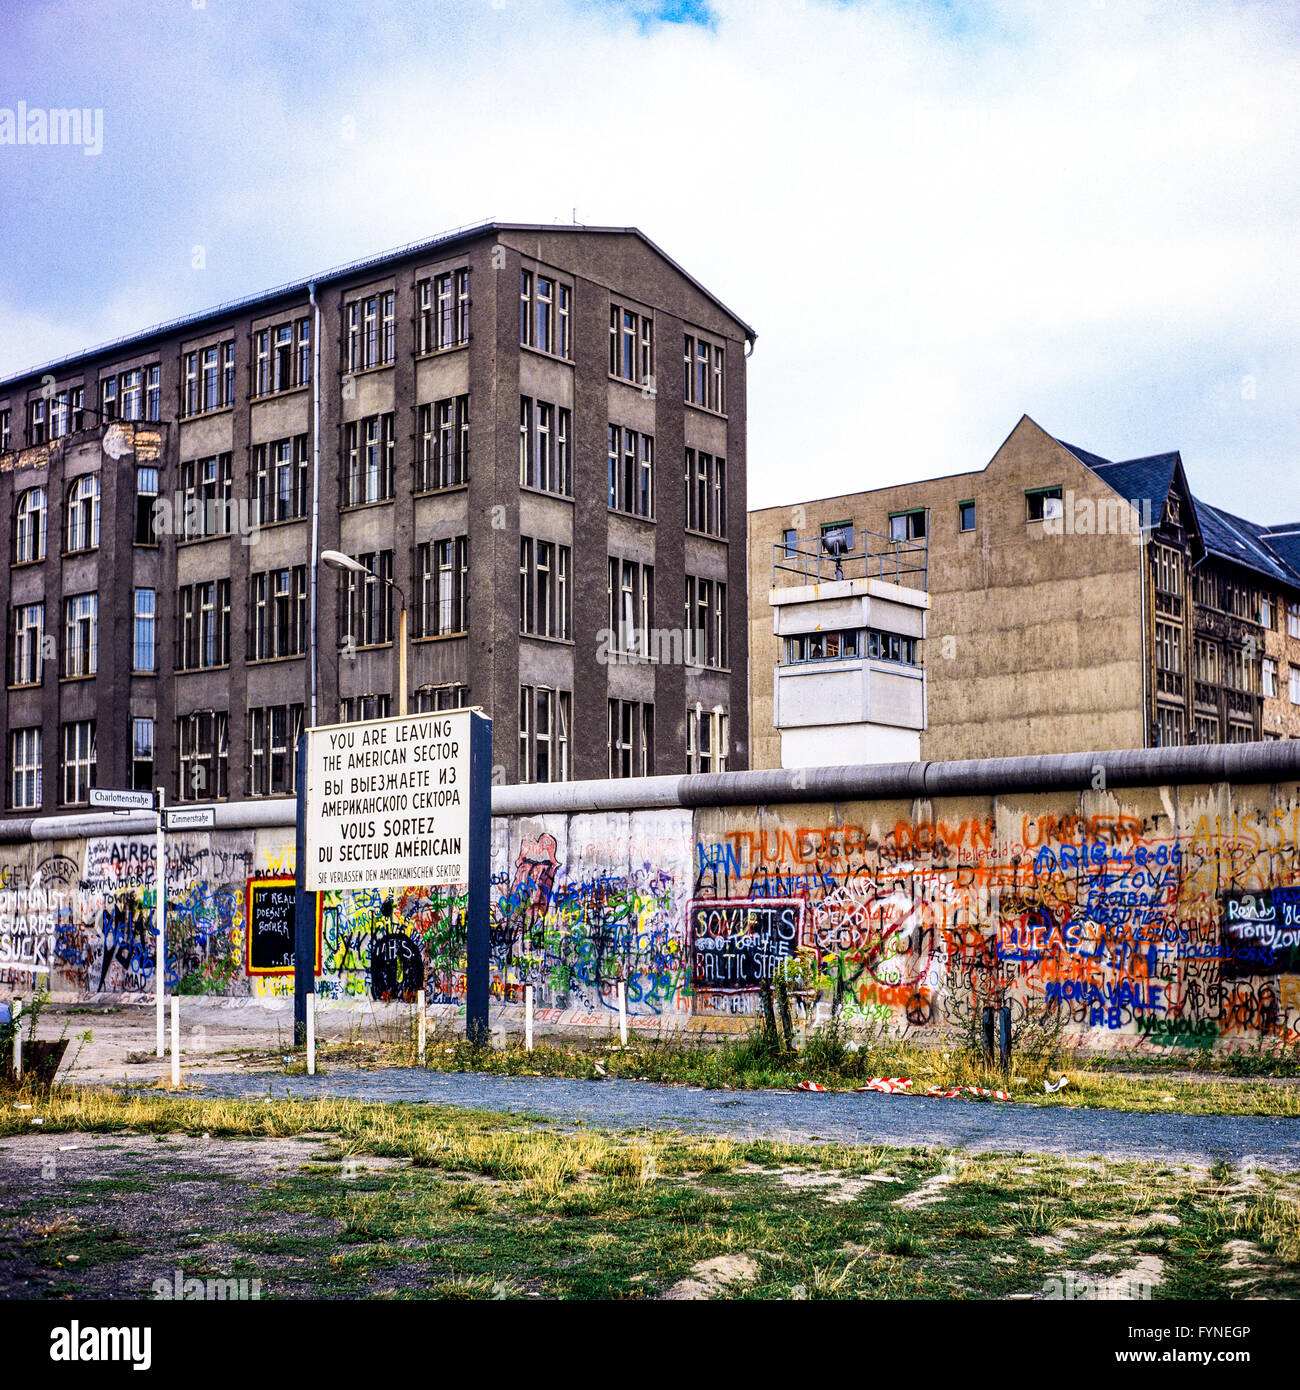 August 1986, leaving American sector warning sign, Berlin Wall graffitis, East Berlin watchtower, Zimmerstrasse - Stock Image